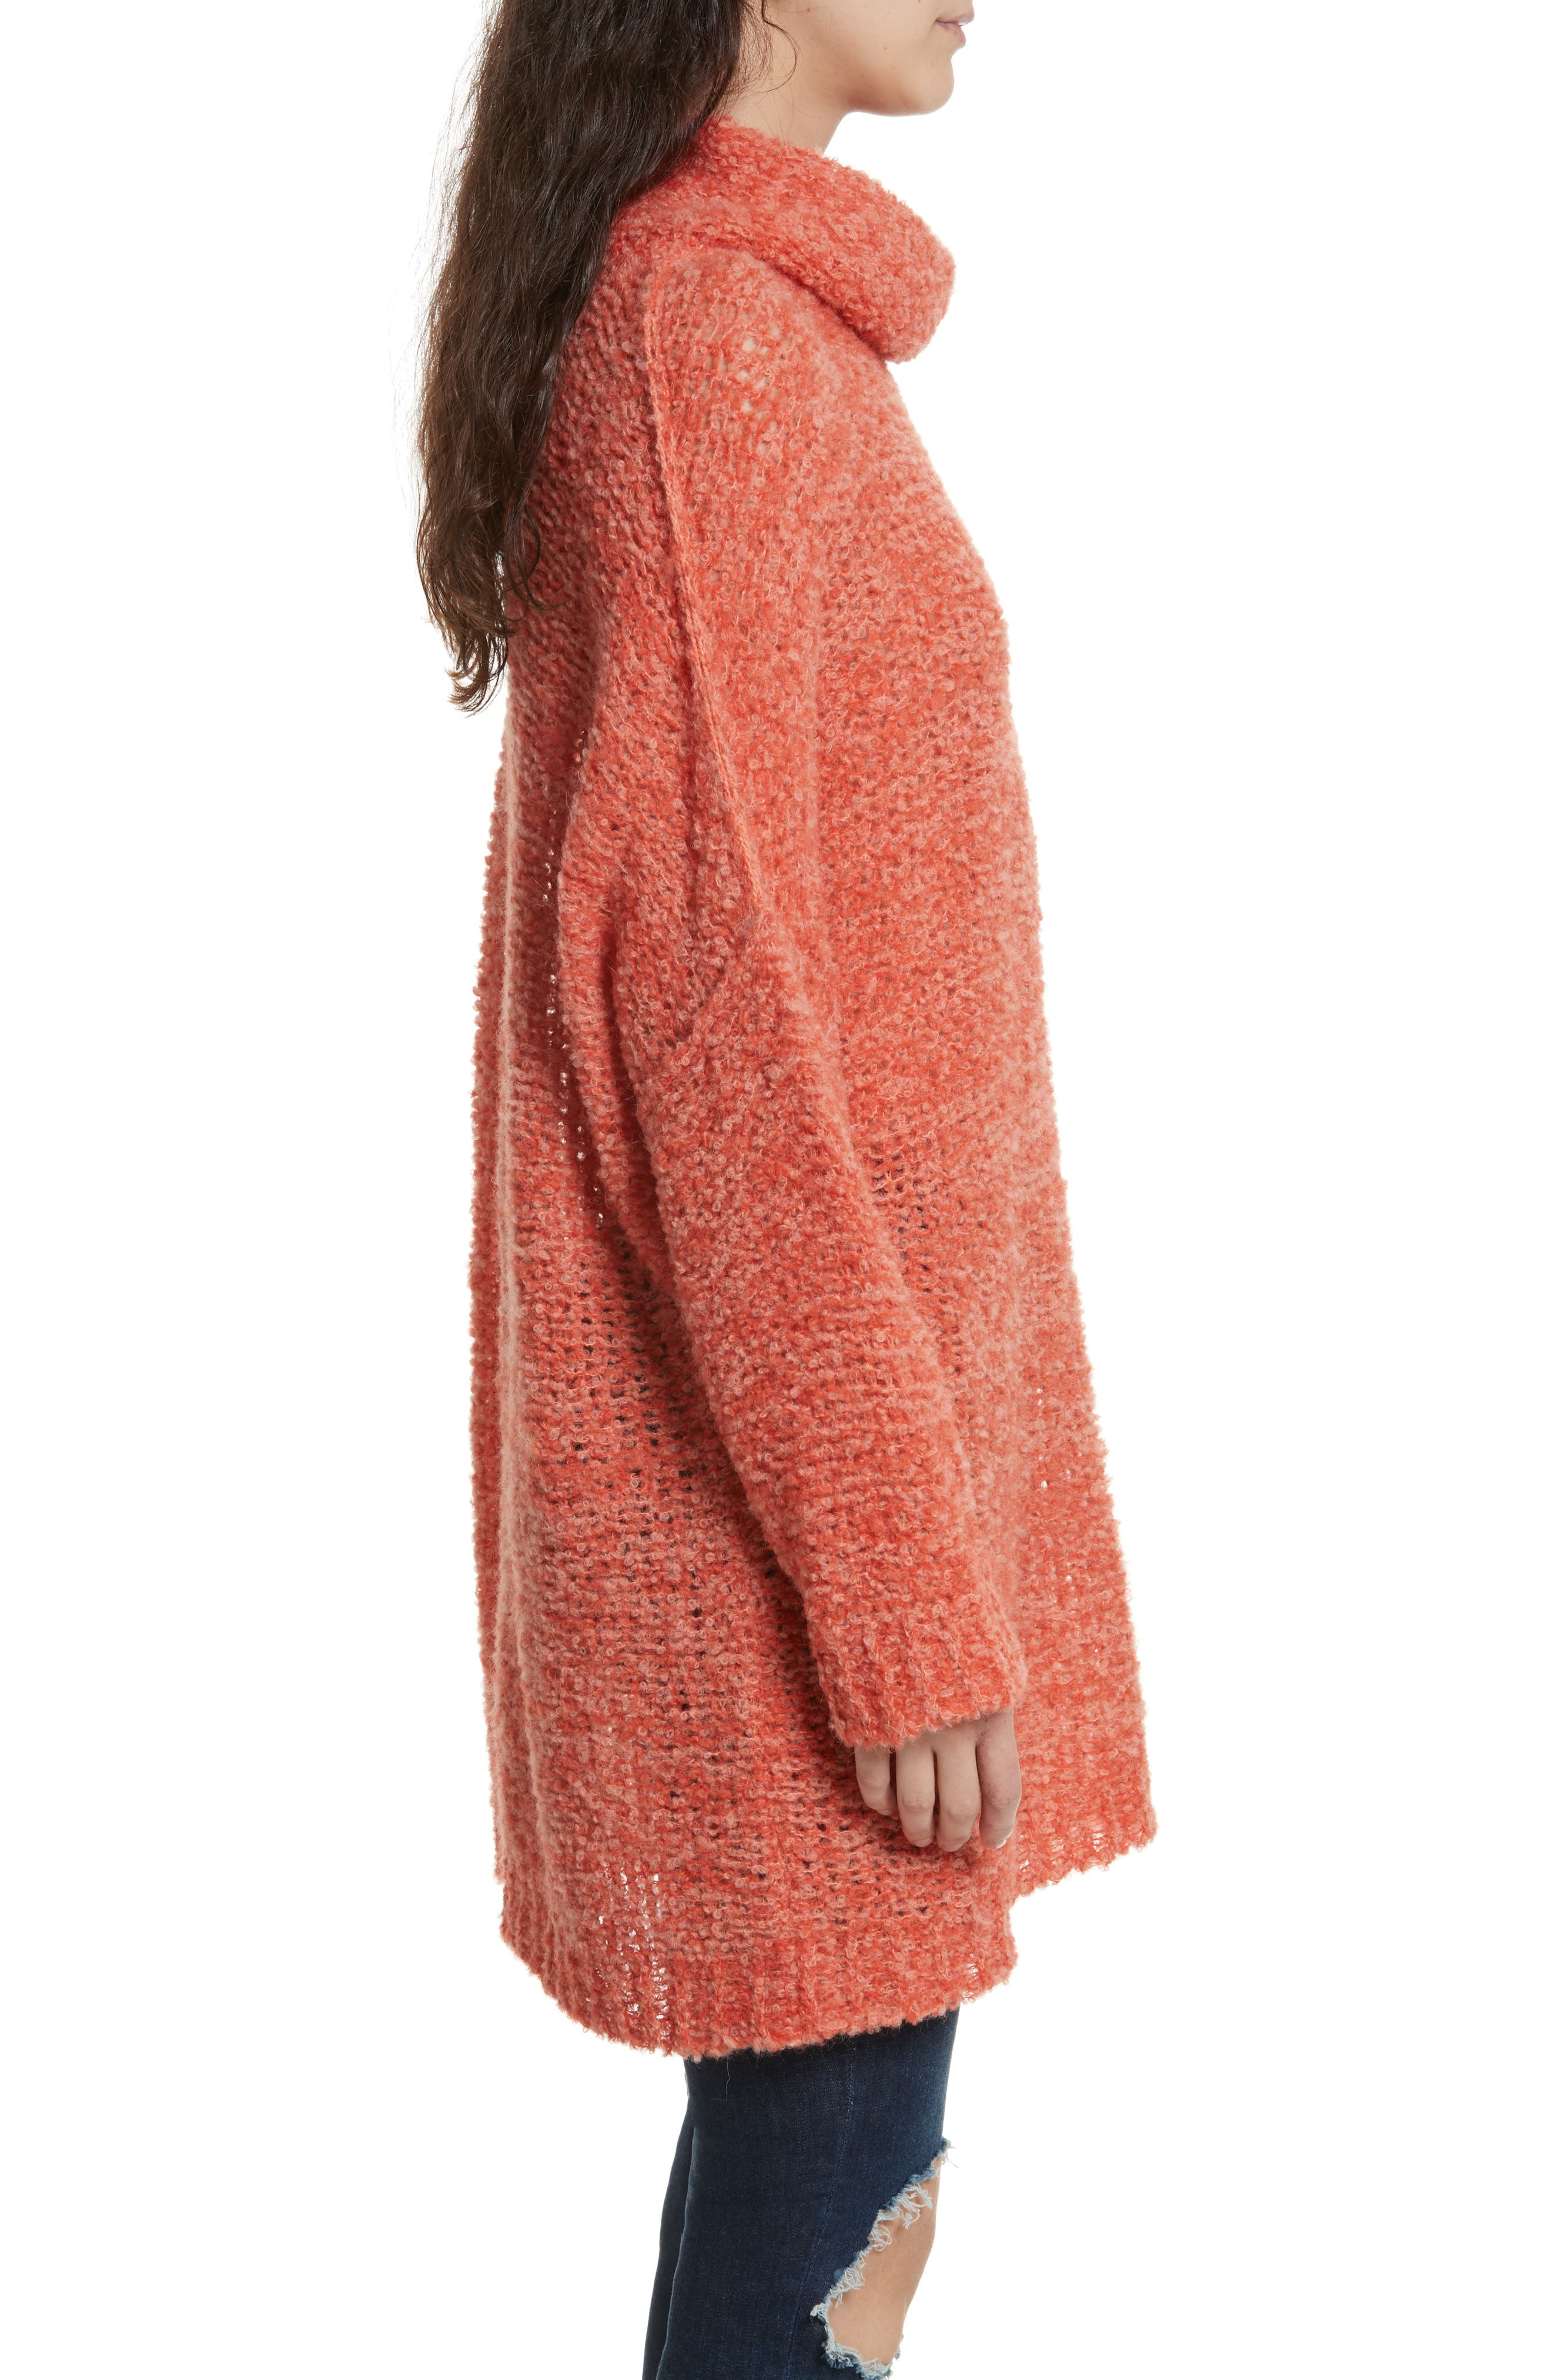 FREE PEOPLE, 'She's All That' Knit Turtleneck Sweater, Alternate thumbnail 3, color, 800